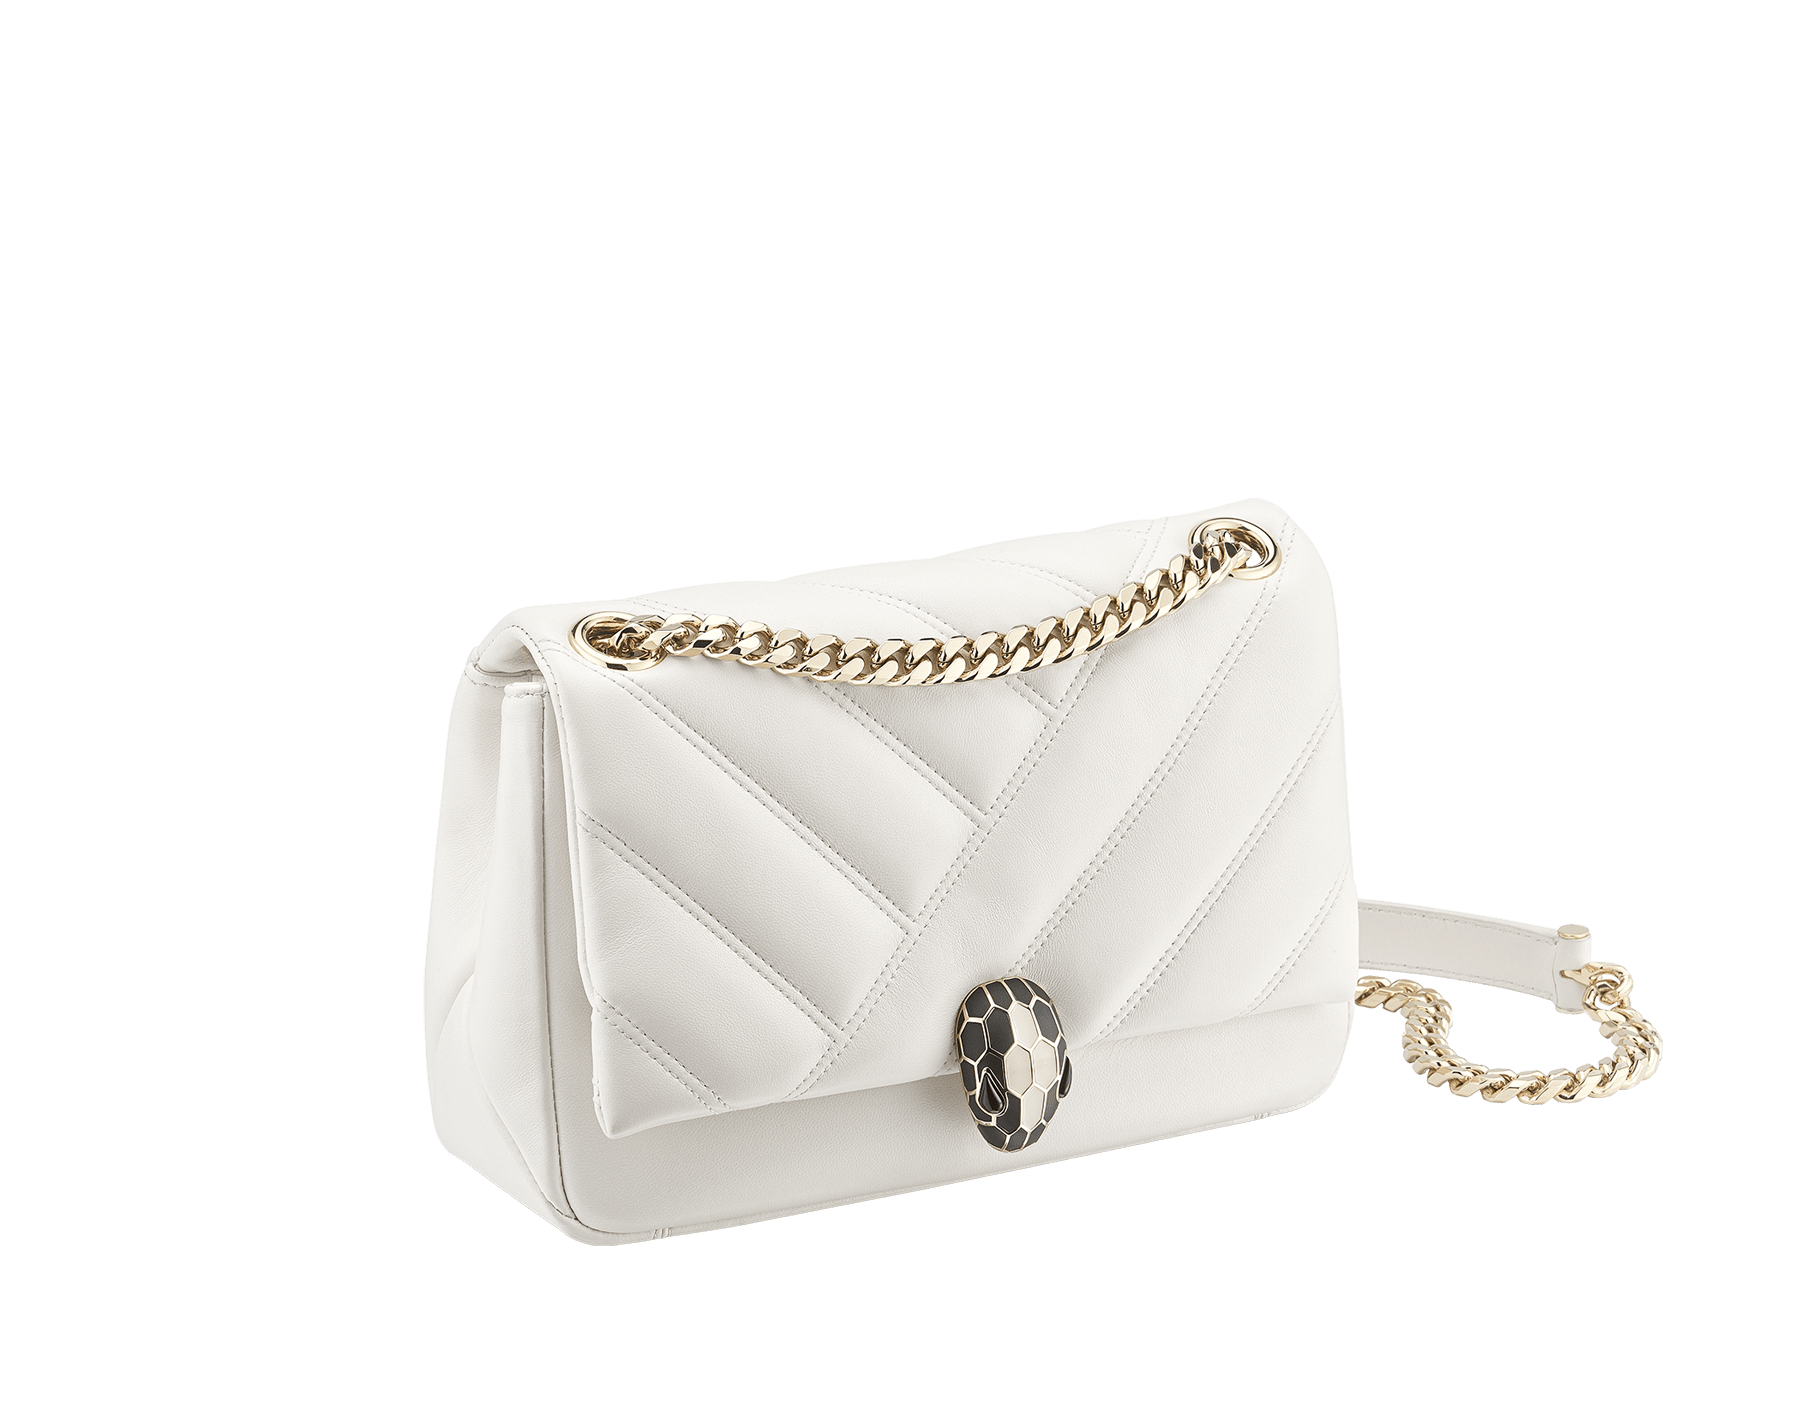 Serpenti Cabochon shoulder bag in soft matelassé white agate nappa leather with graphic motif and white agate calf leather. Snakehead closure in rose gold plated brass decorated with matte black and white enamel, and black onyx eyes. 287993 image 2